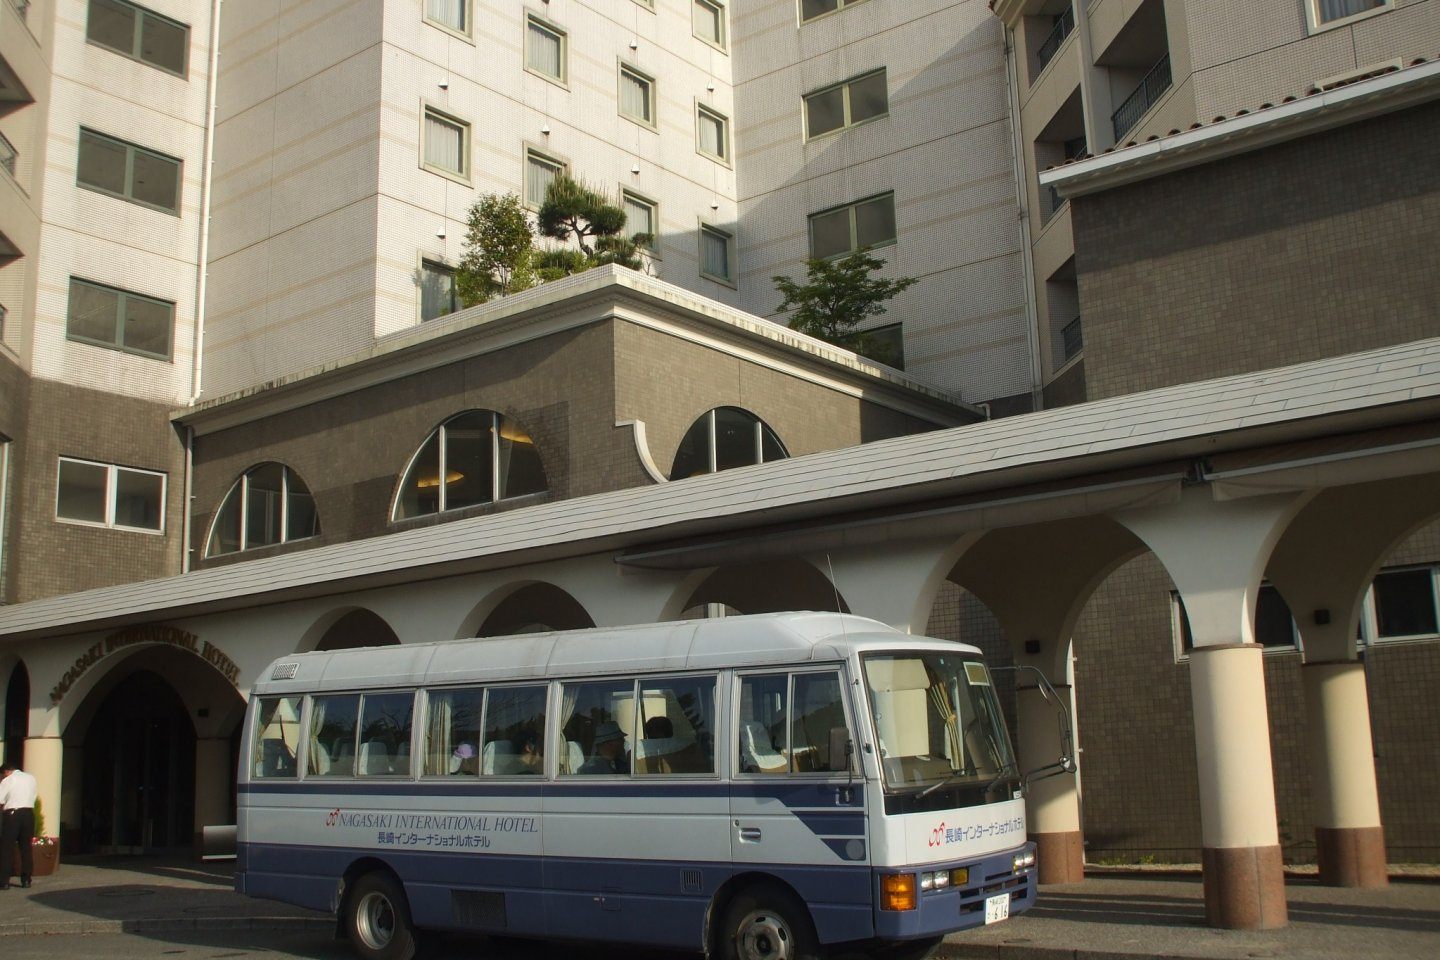 The free shuttle bus that makes stops at Nagasaki Airport 8 minutes away, or Omura Station 5 minutes away.